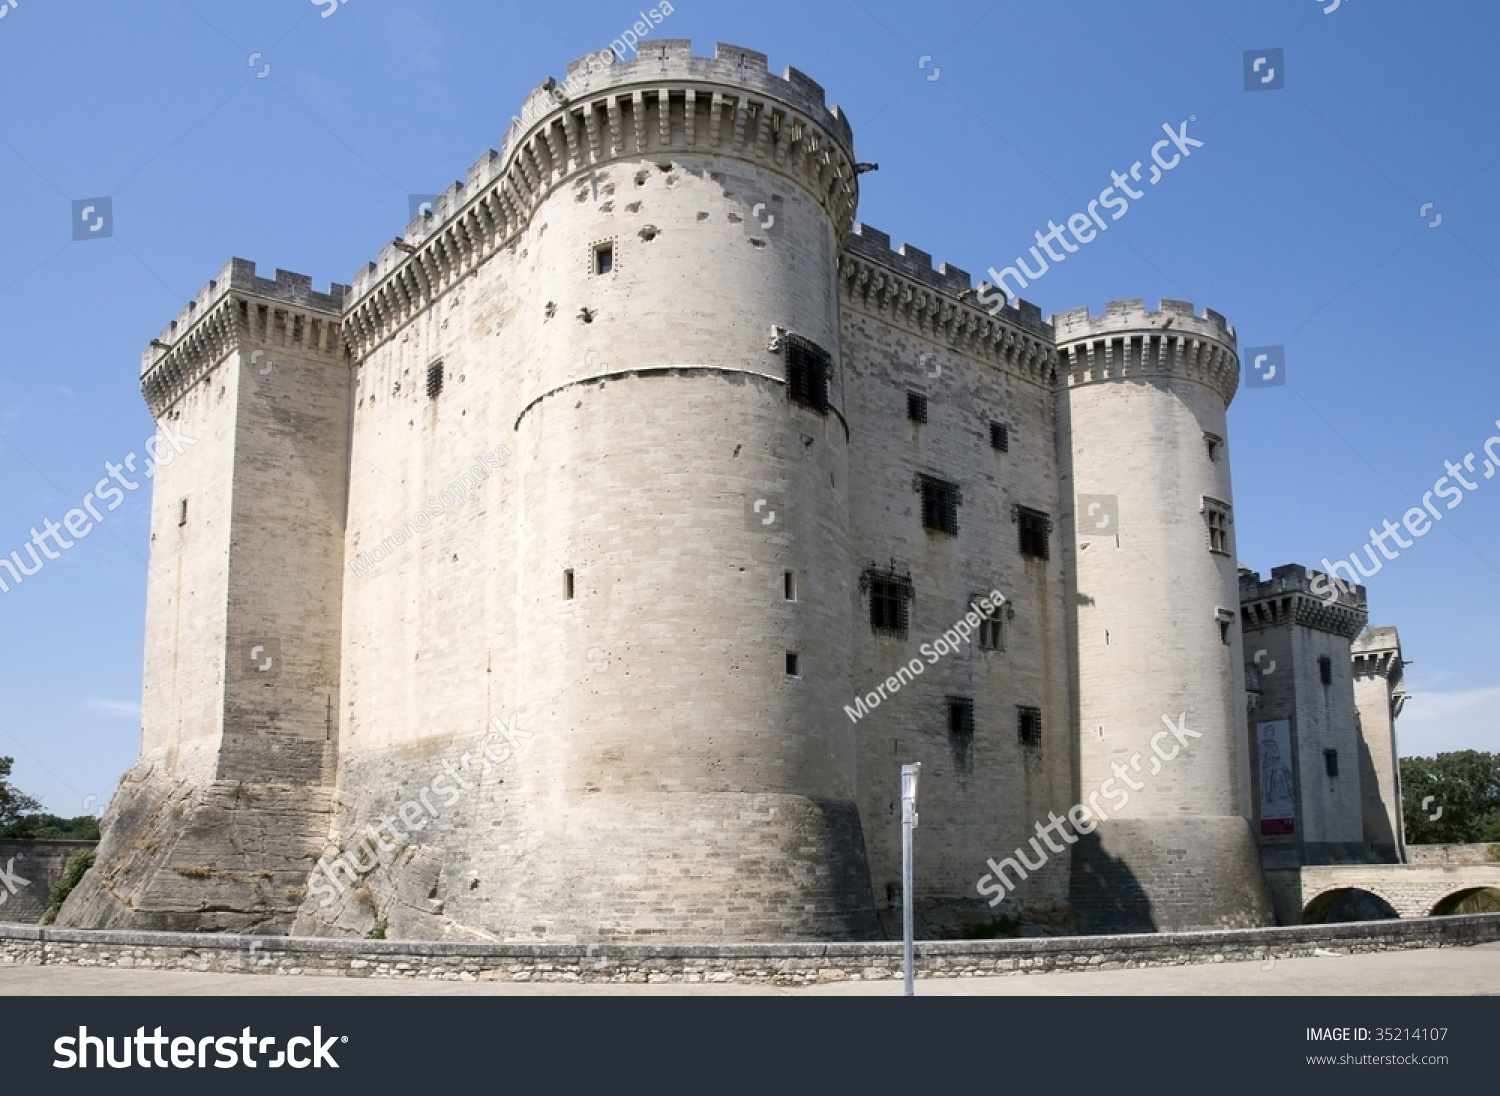 Tarascon Castle, France. The construction of the current castle of Tarascon was started in 1401 by Louis II of Anjou.